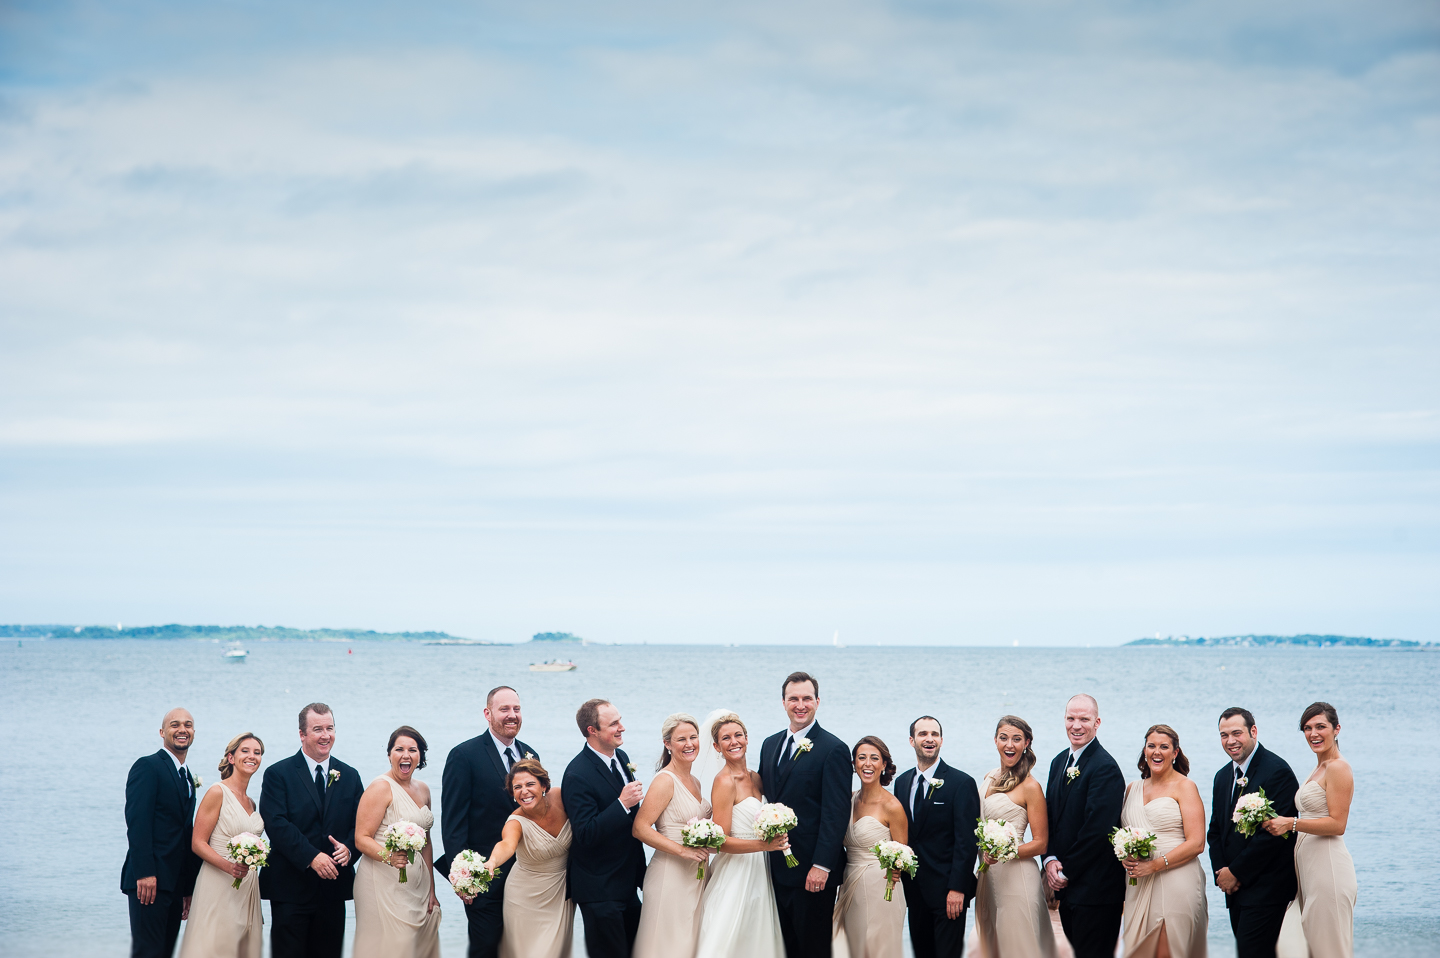 the gorgeous wedding party laughs  for this informal wedding party photo